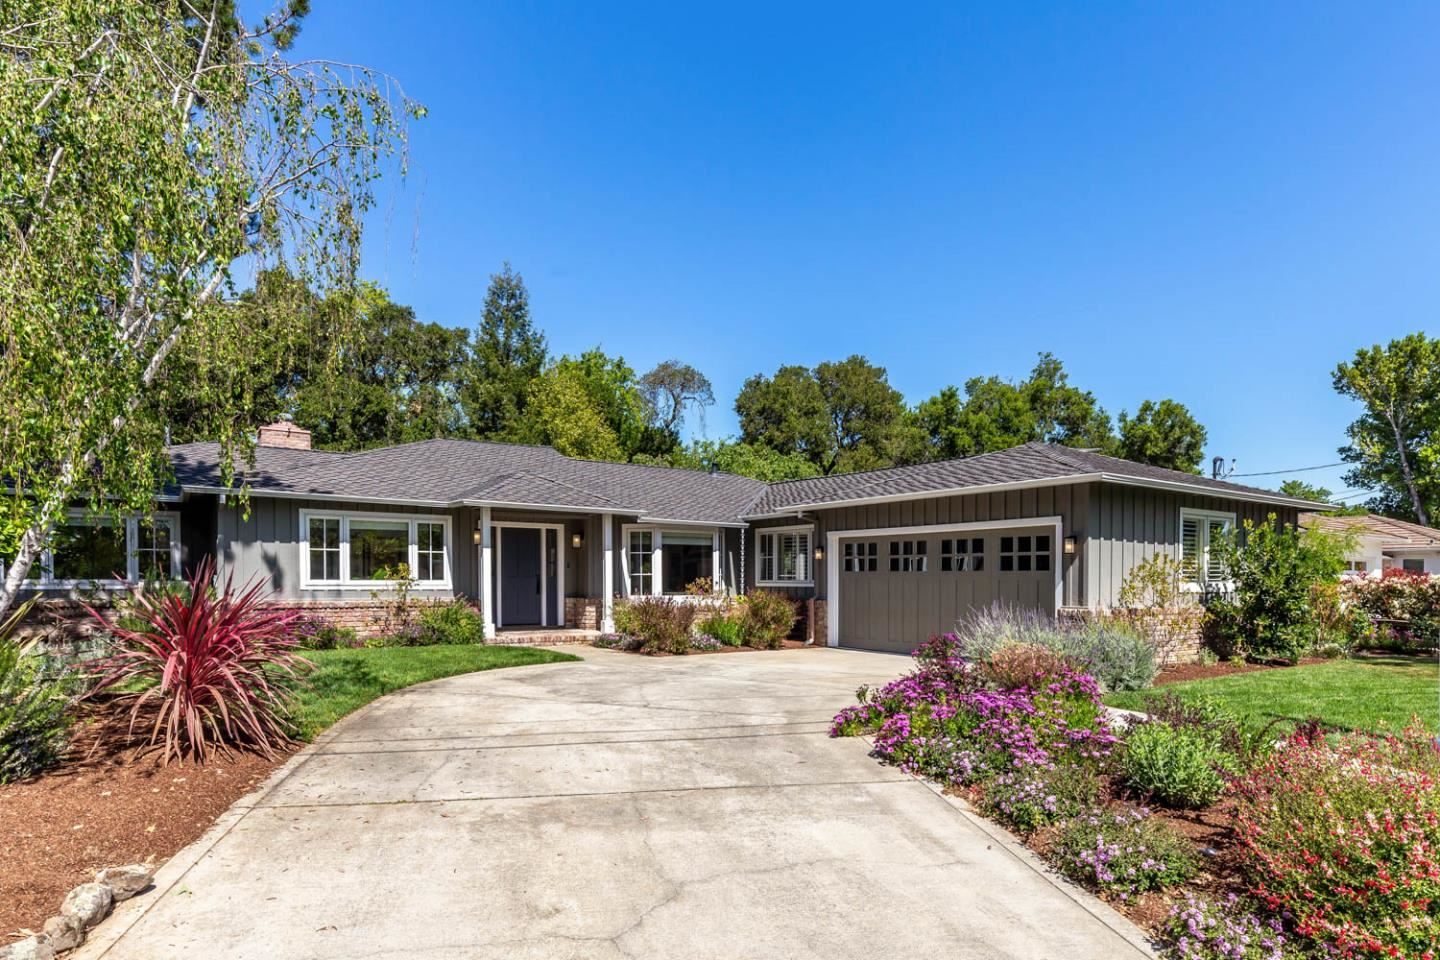 Photo for 1126 Laureles Drive, LOS ALTOS, CA 94022 (MLS # ML81839396)